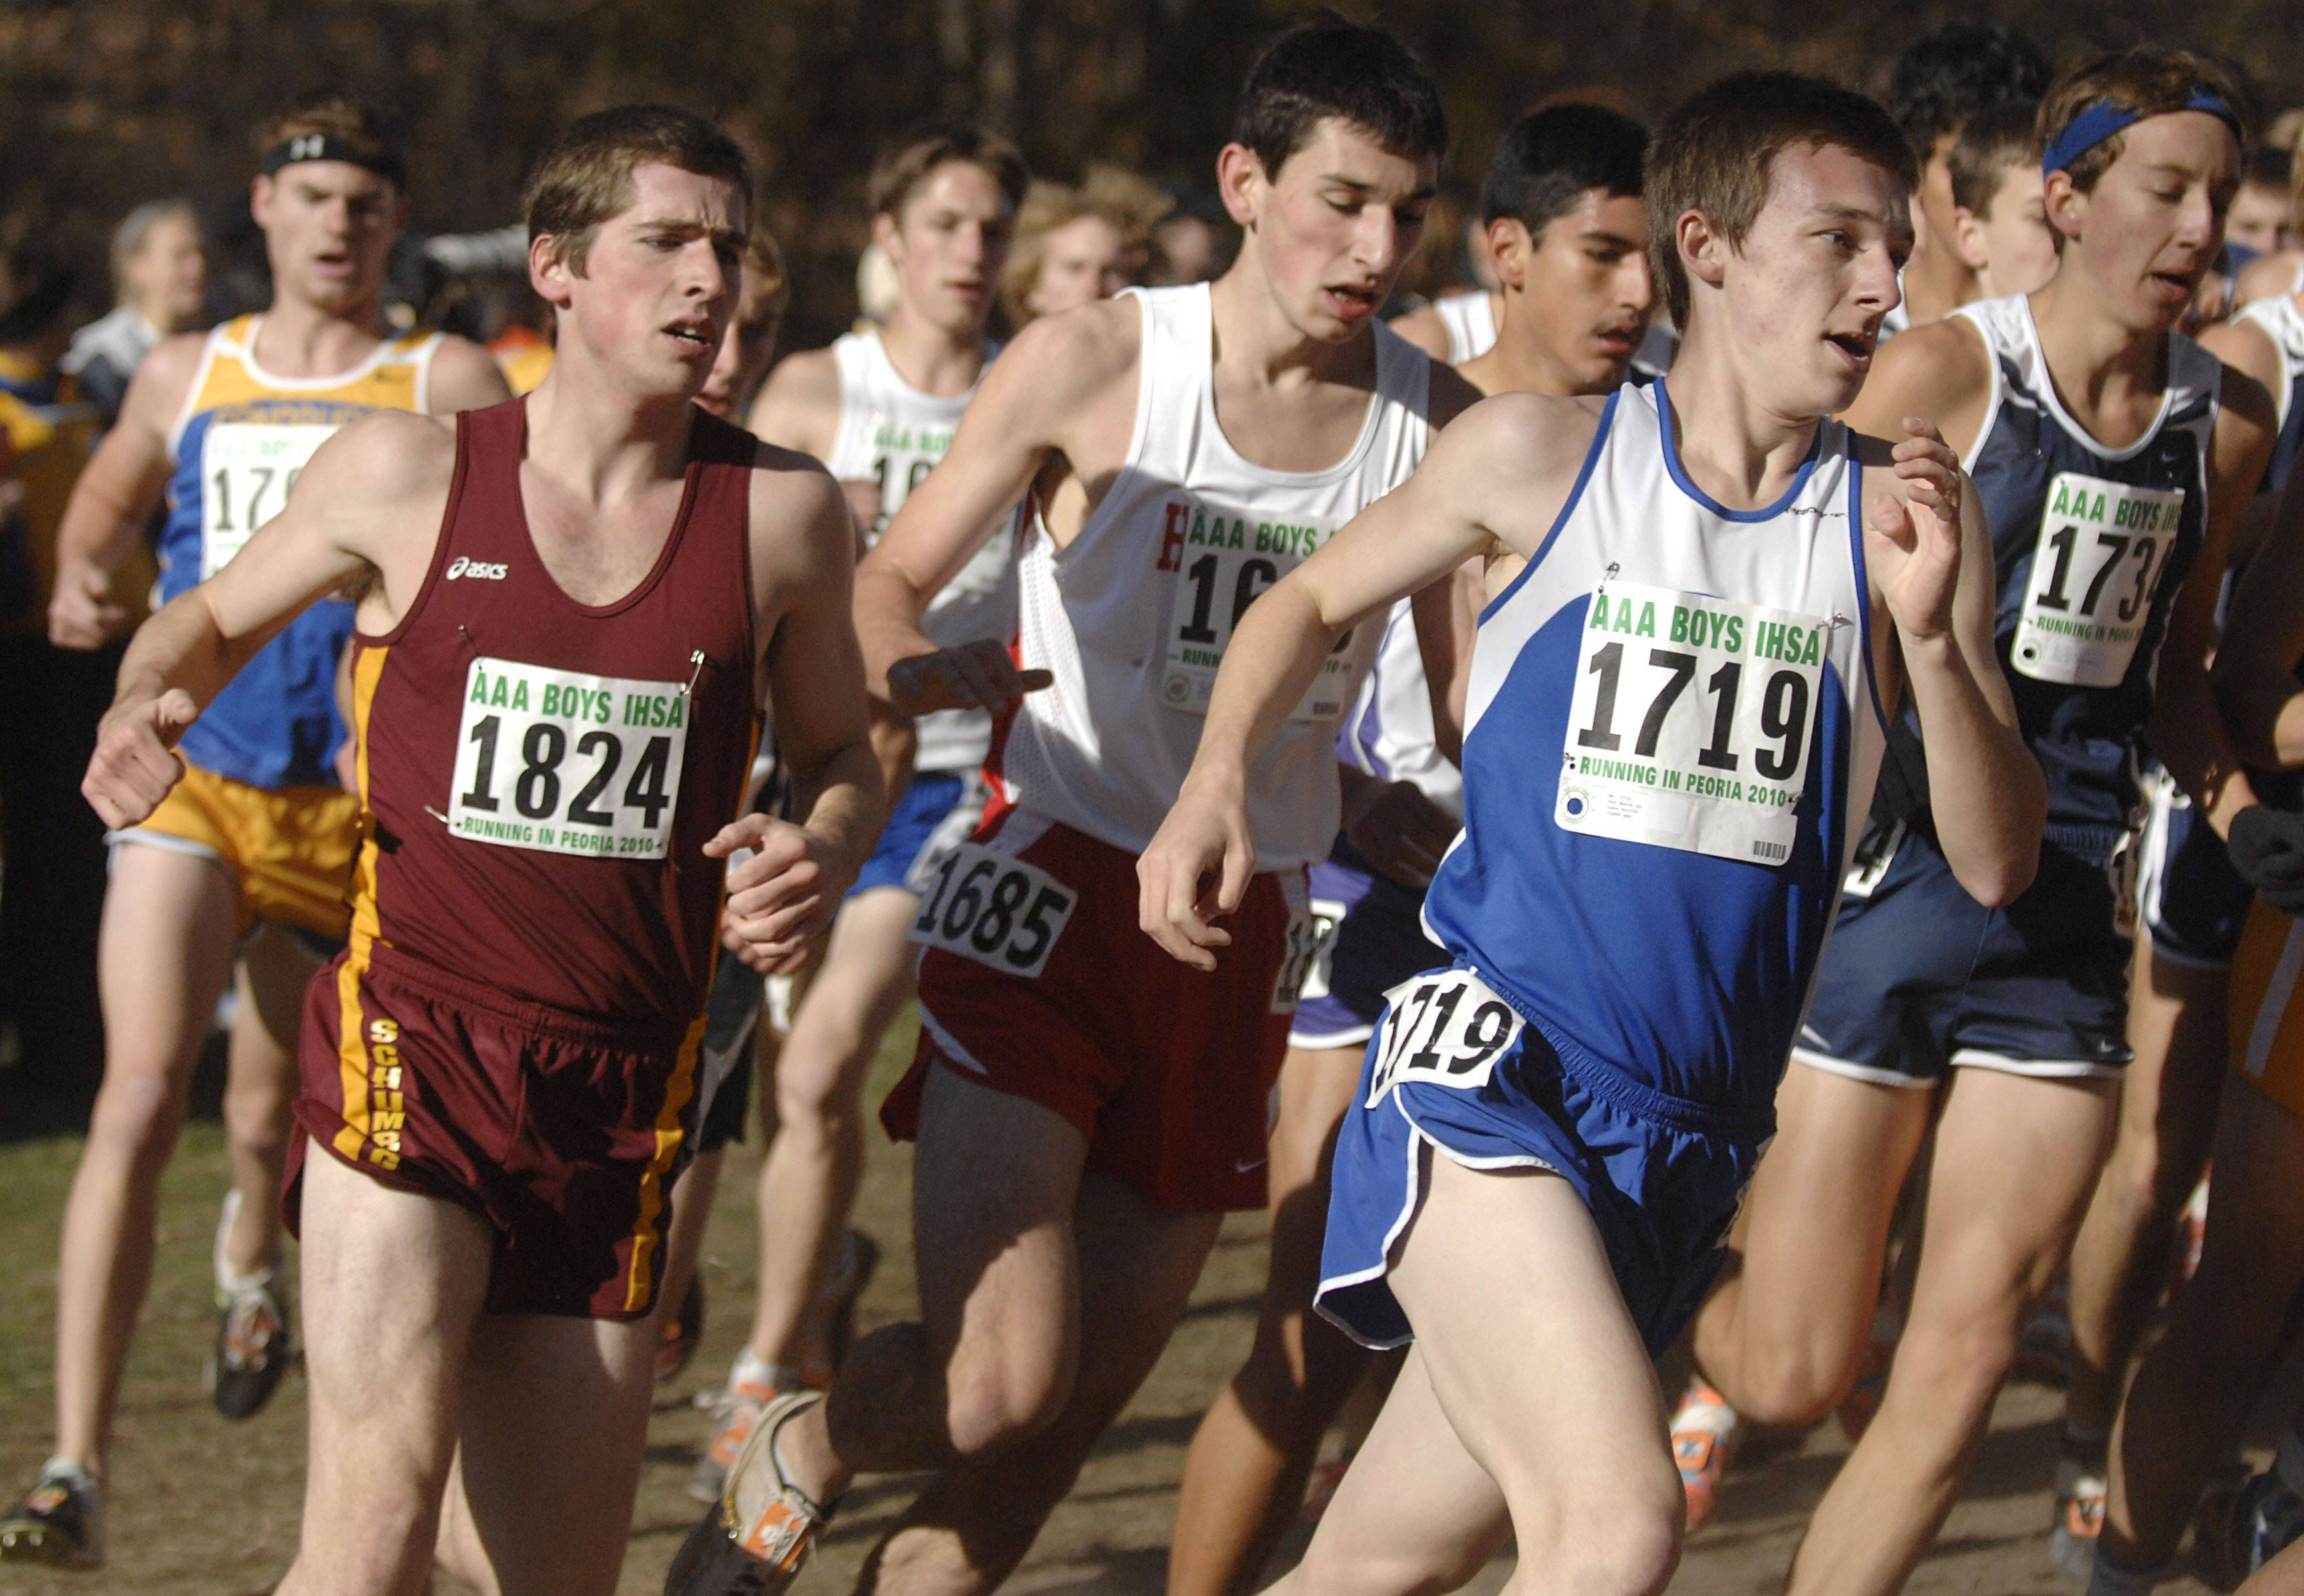 Schaumburg's Connor Prizy and Lake Zurich's Jon Smith in the 3A class of the state cross country meet at Detweiller Park in Peoria on Saturday, November 6.